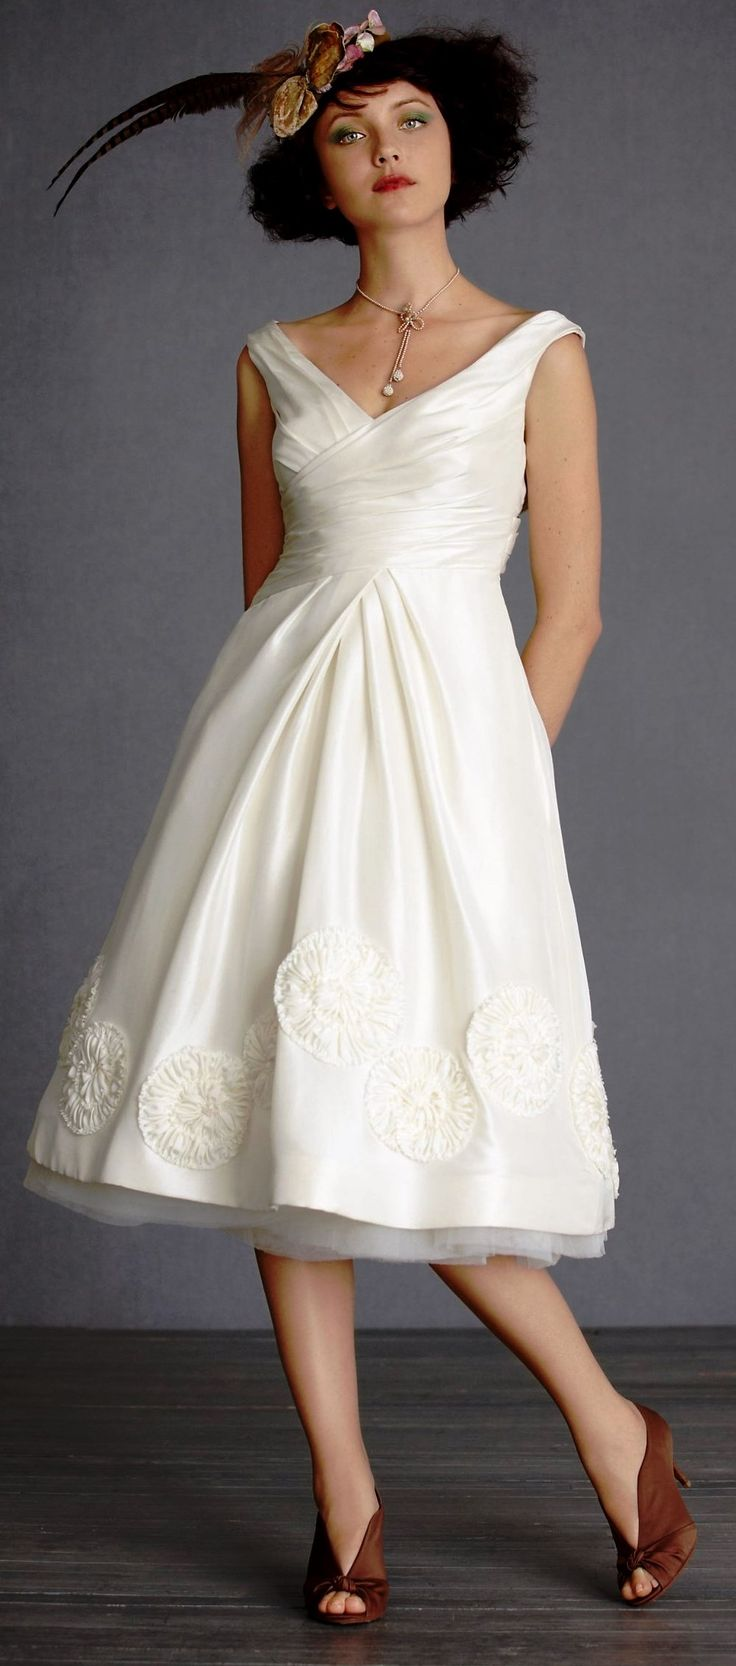 Plus size wedding dresses for older brides l300 for Wedding dresses for plus size mature brides